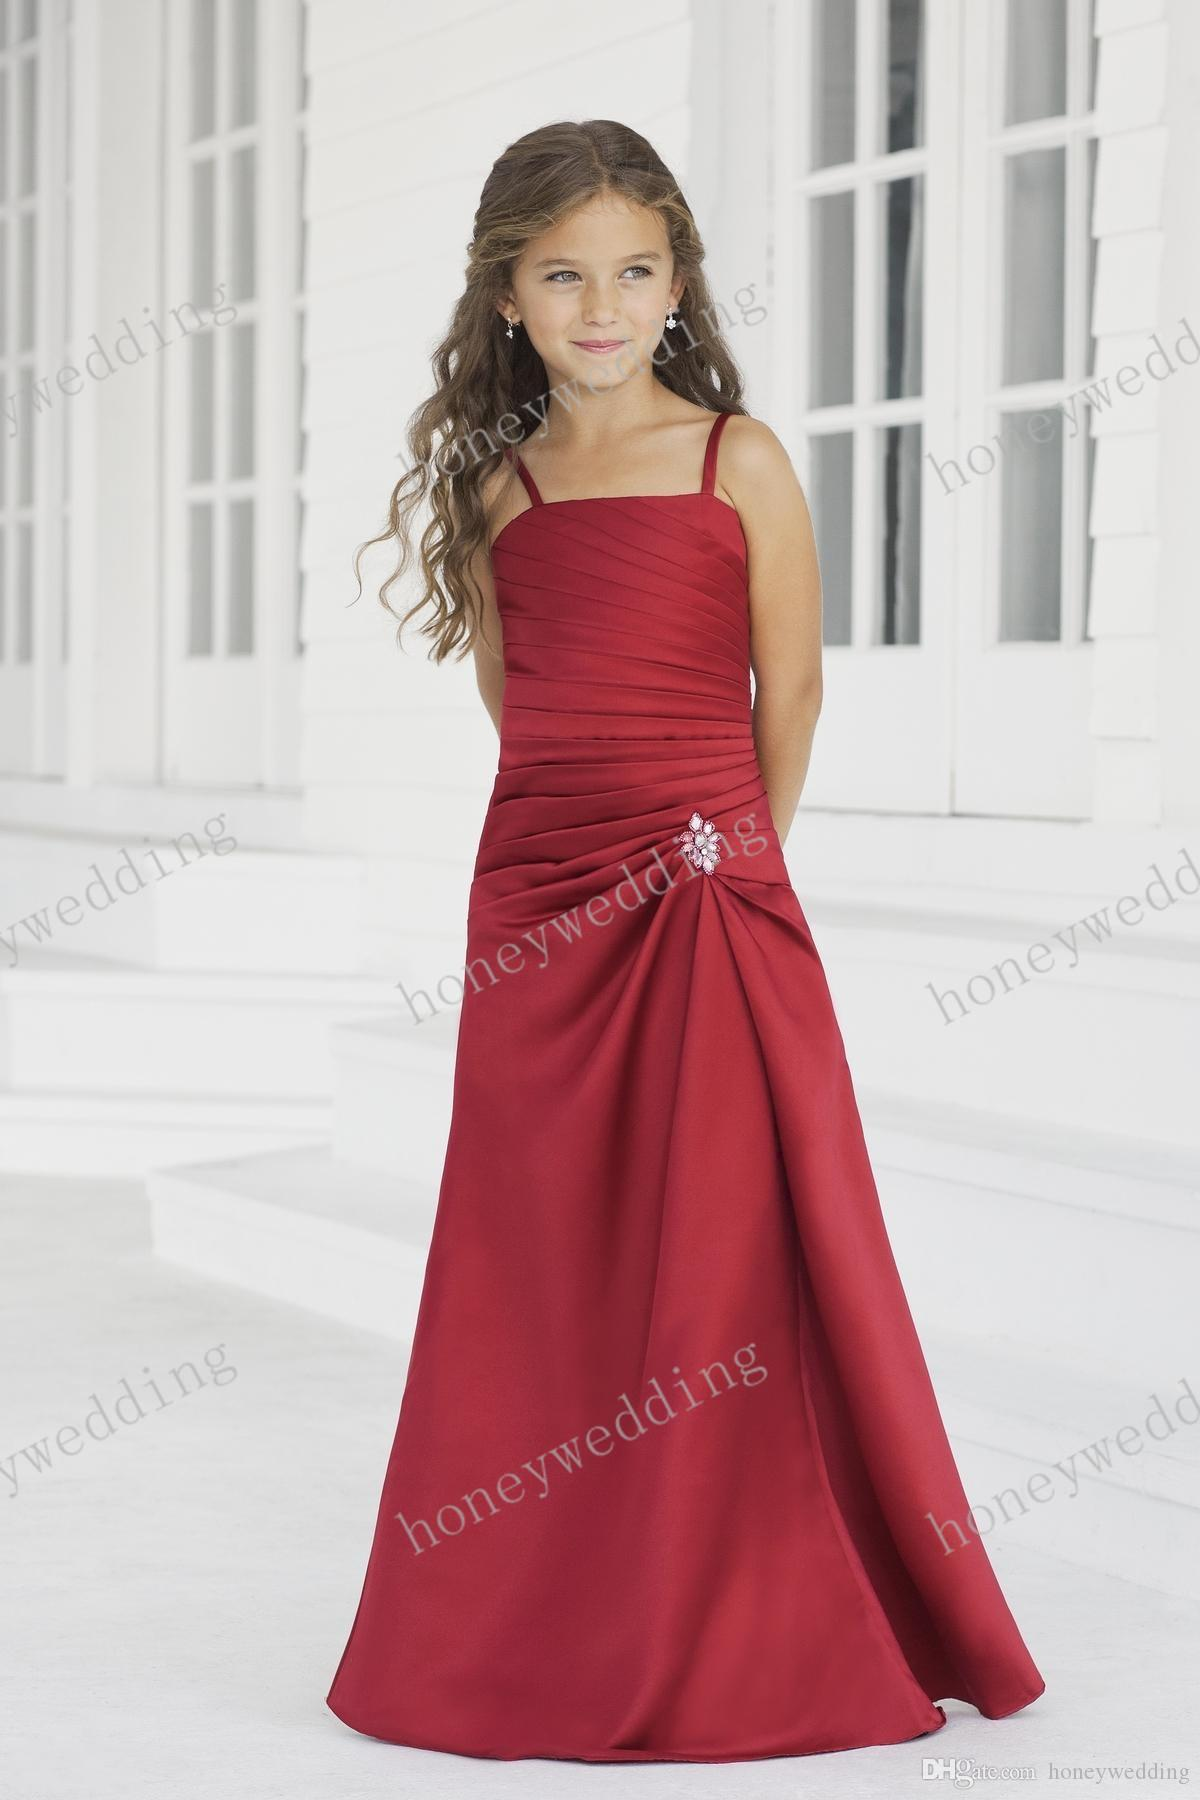 Flower girl dress red color